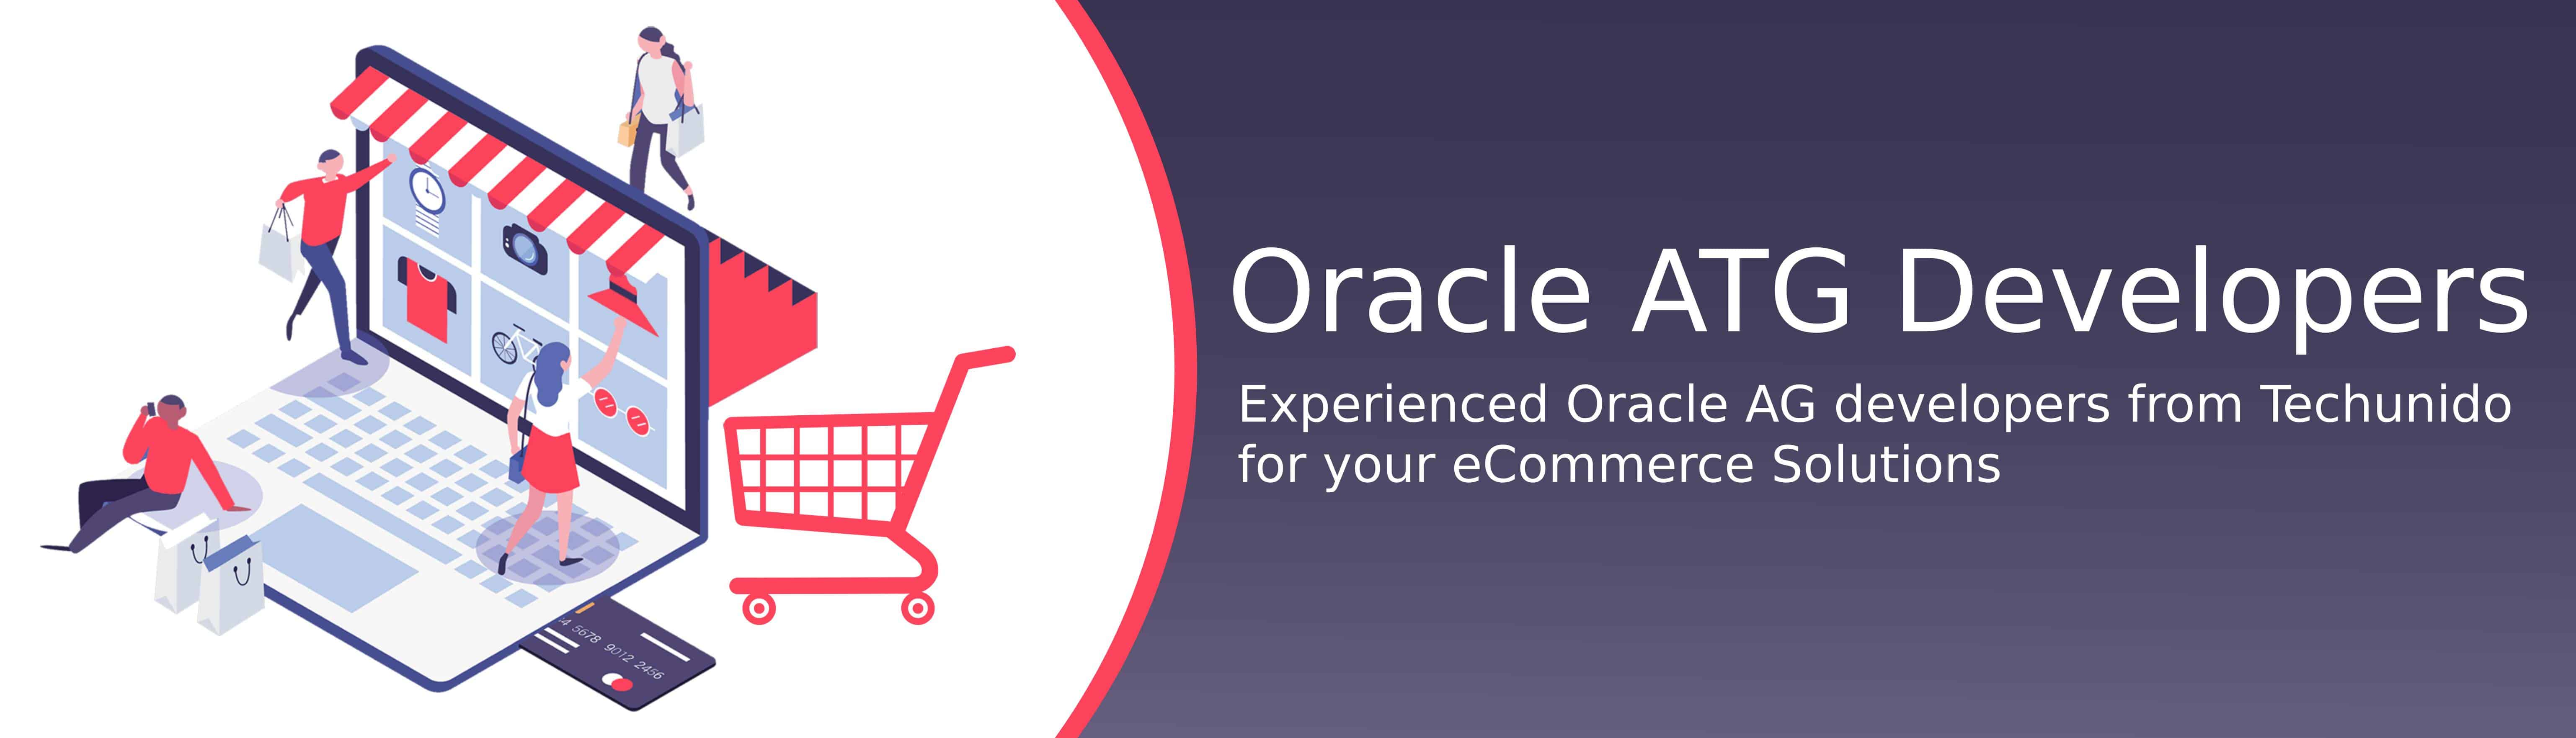 Oracle ATG Developers